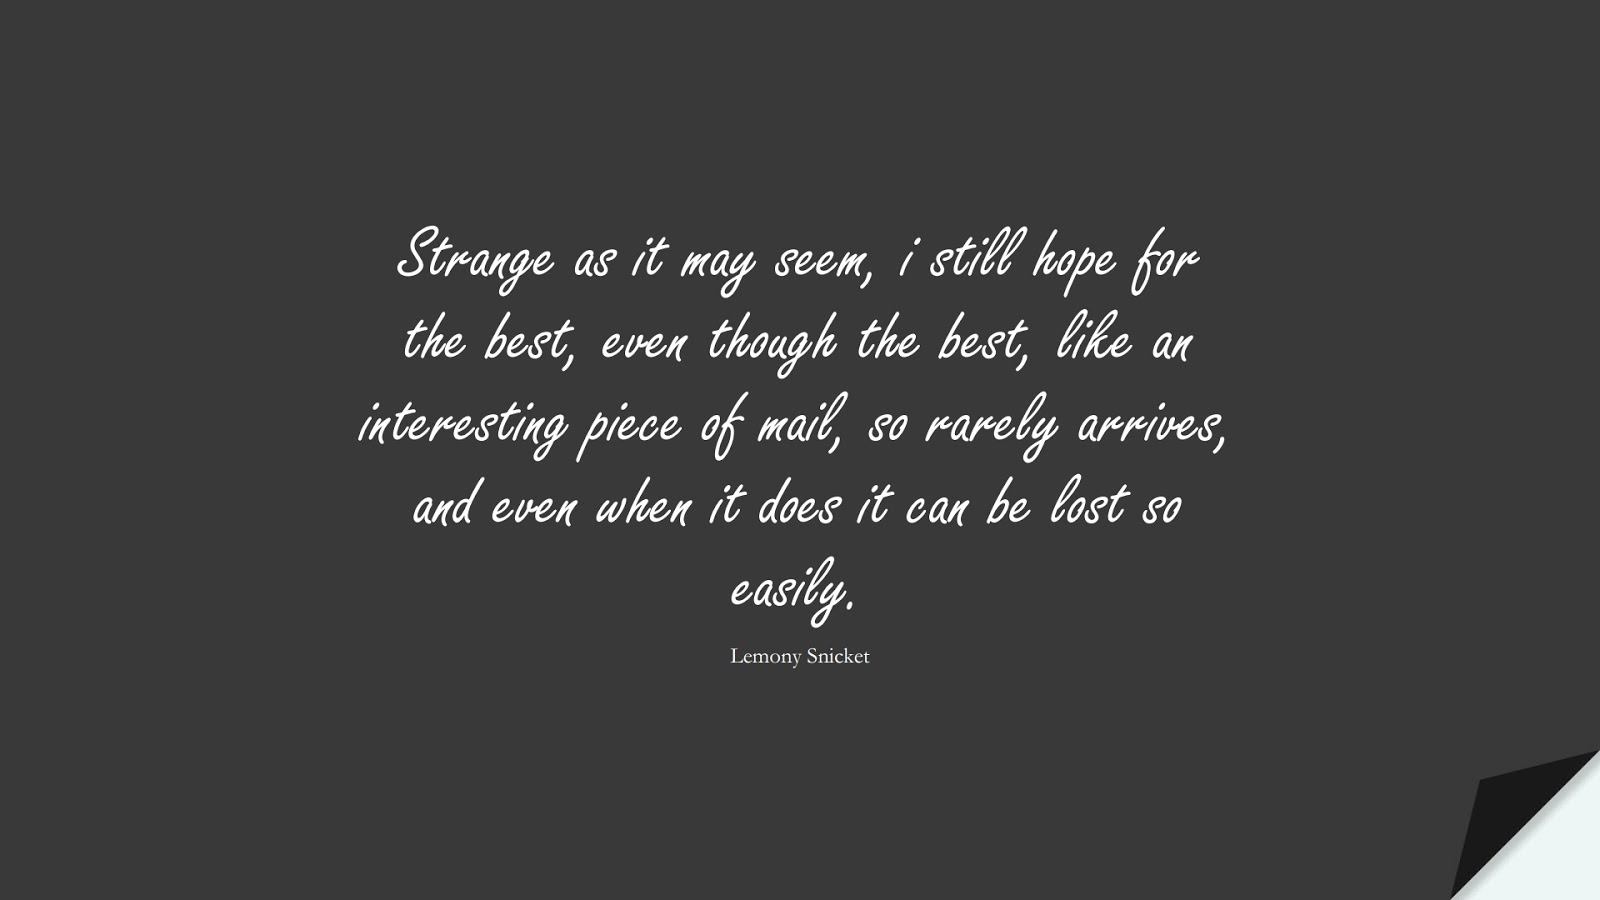 Strange as it may seem, i still hope for the best, even though the best, like an interesting piece of mail, so rarely arrives, and even when it does it can be lost so easily. (Lemony Snicket);  #HopeQuotes